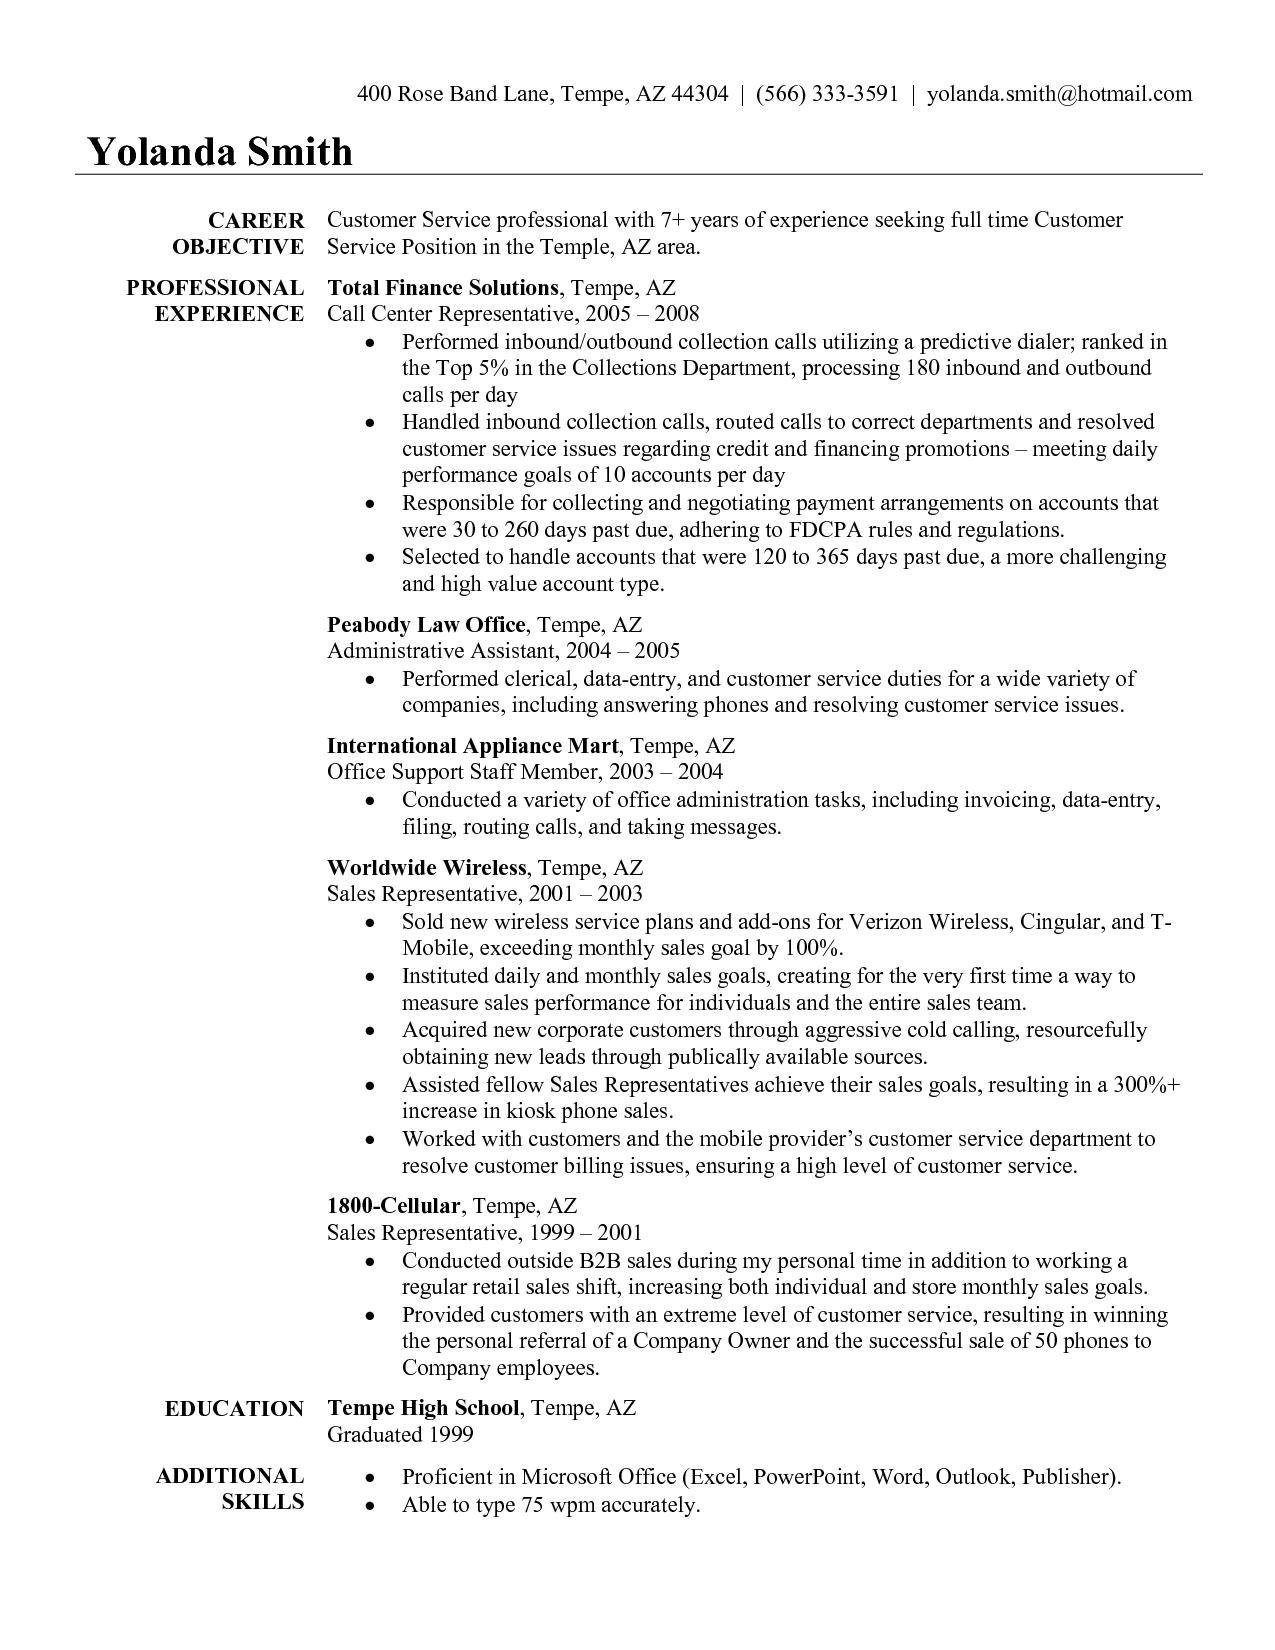 Traffic Customer Resume Examples,,customer service resume